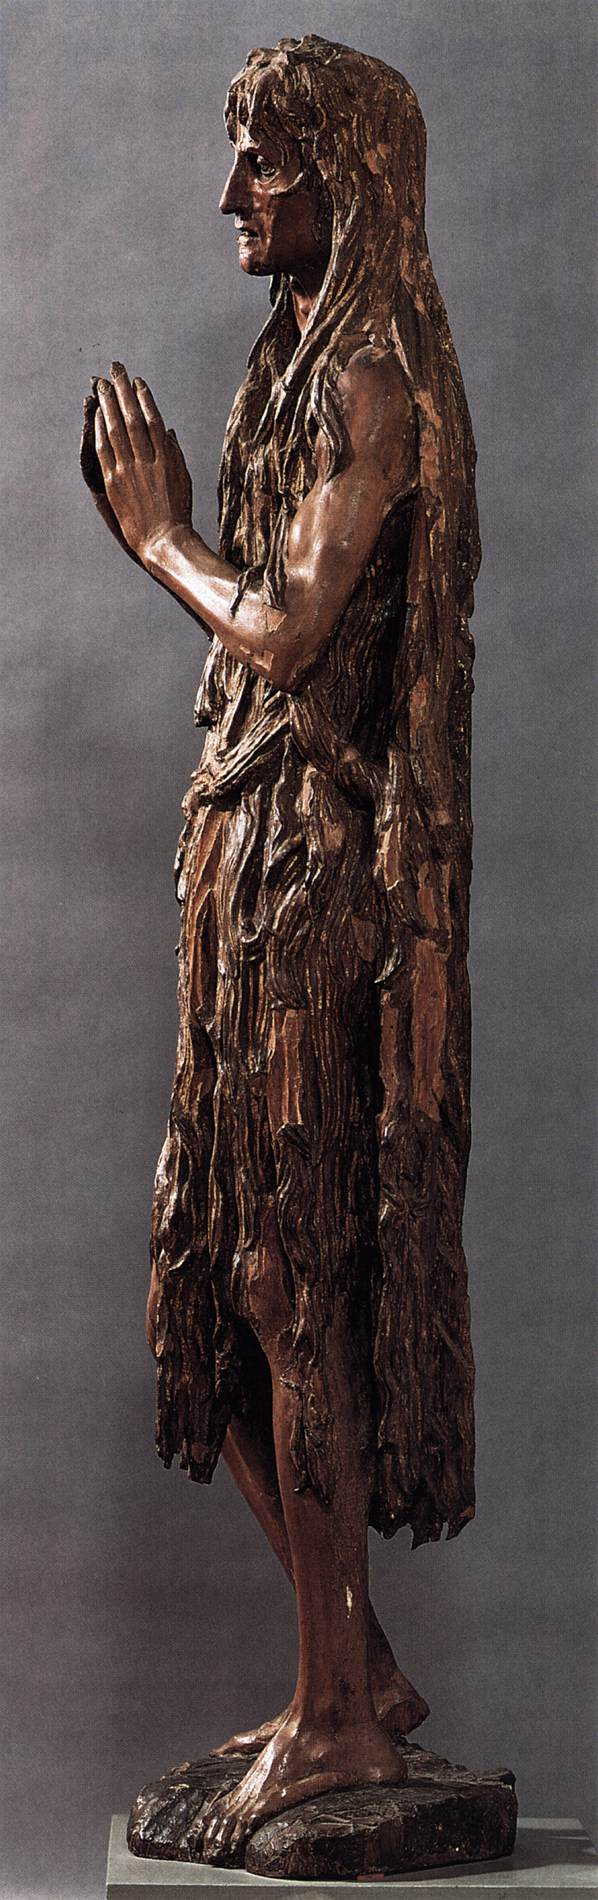 st mary magdalene side view c 1457 polychrome wood height 188 cmDonatello Mary Magdalene